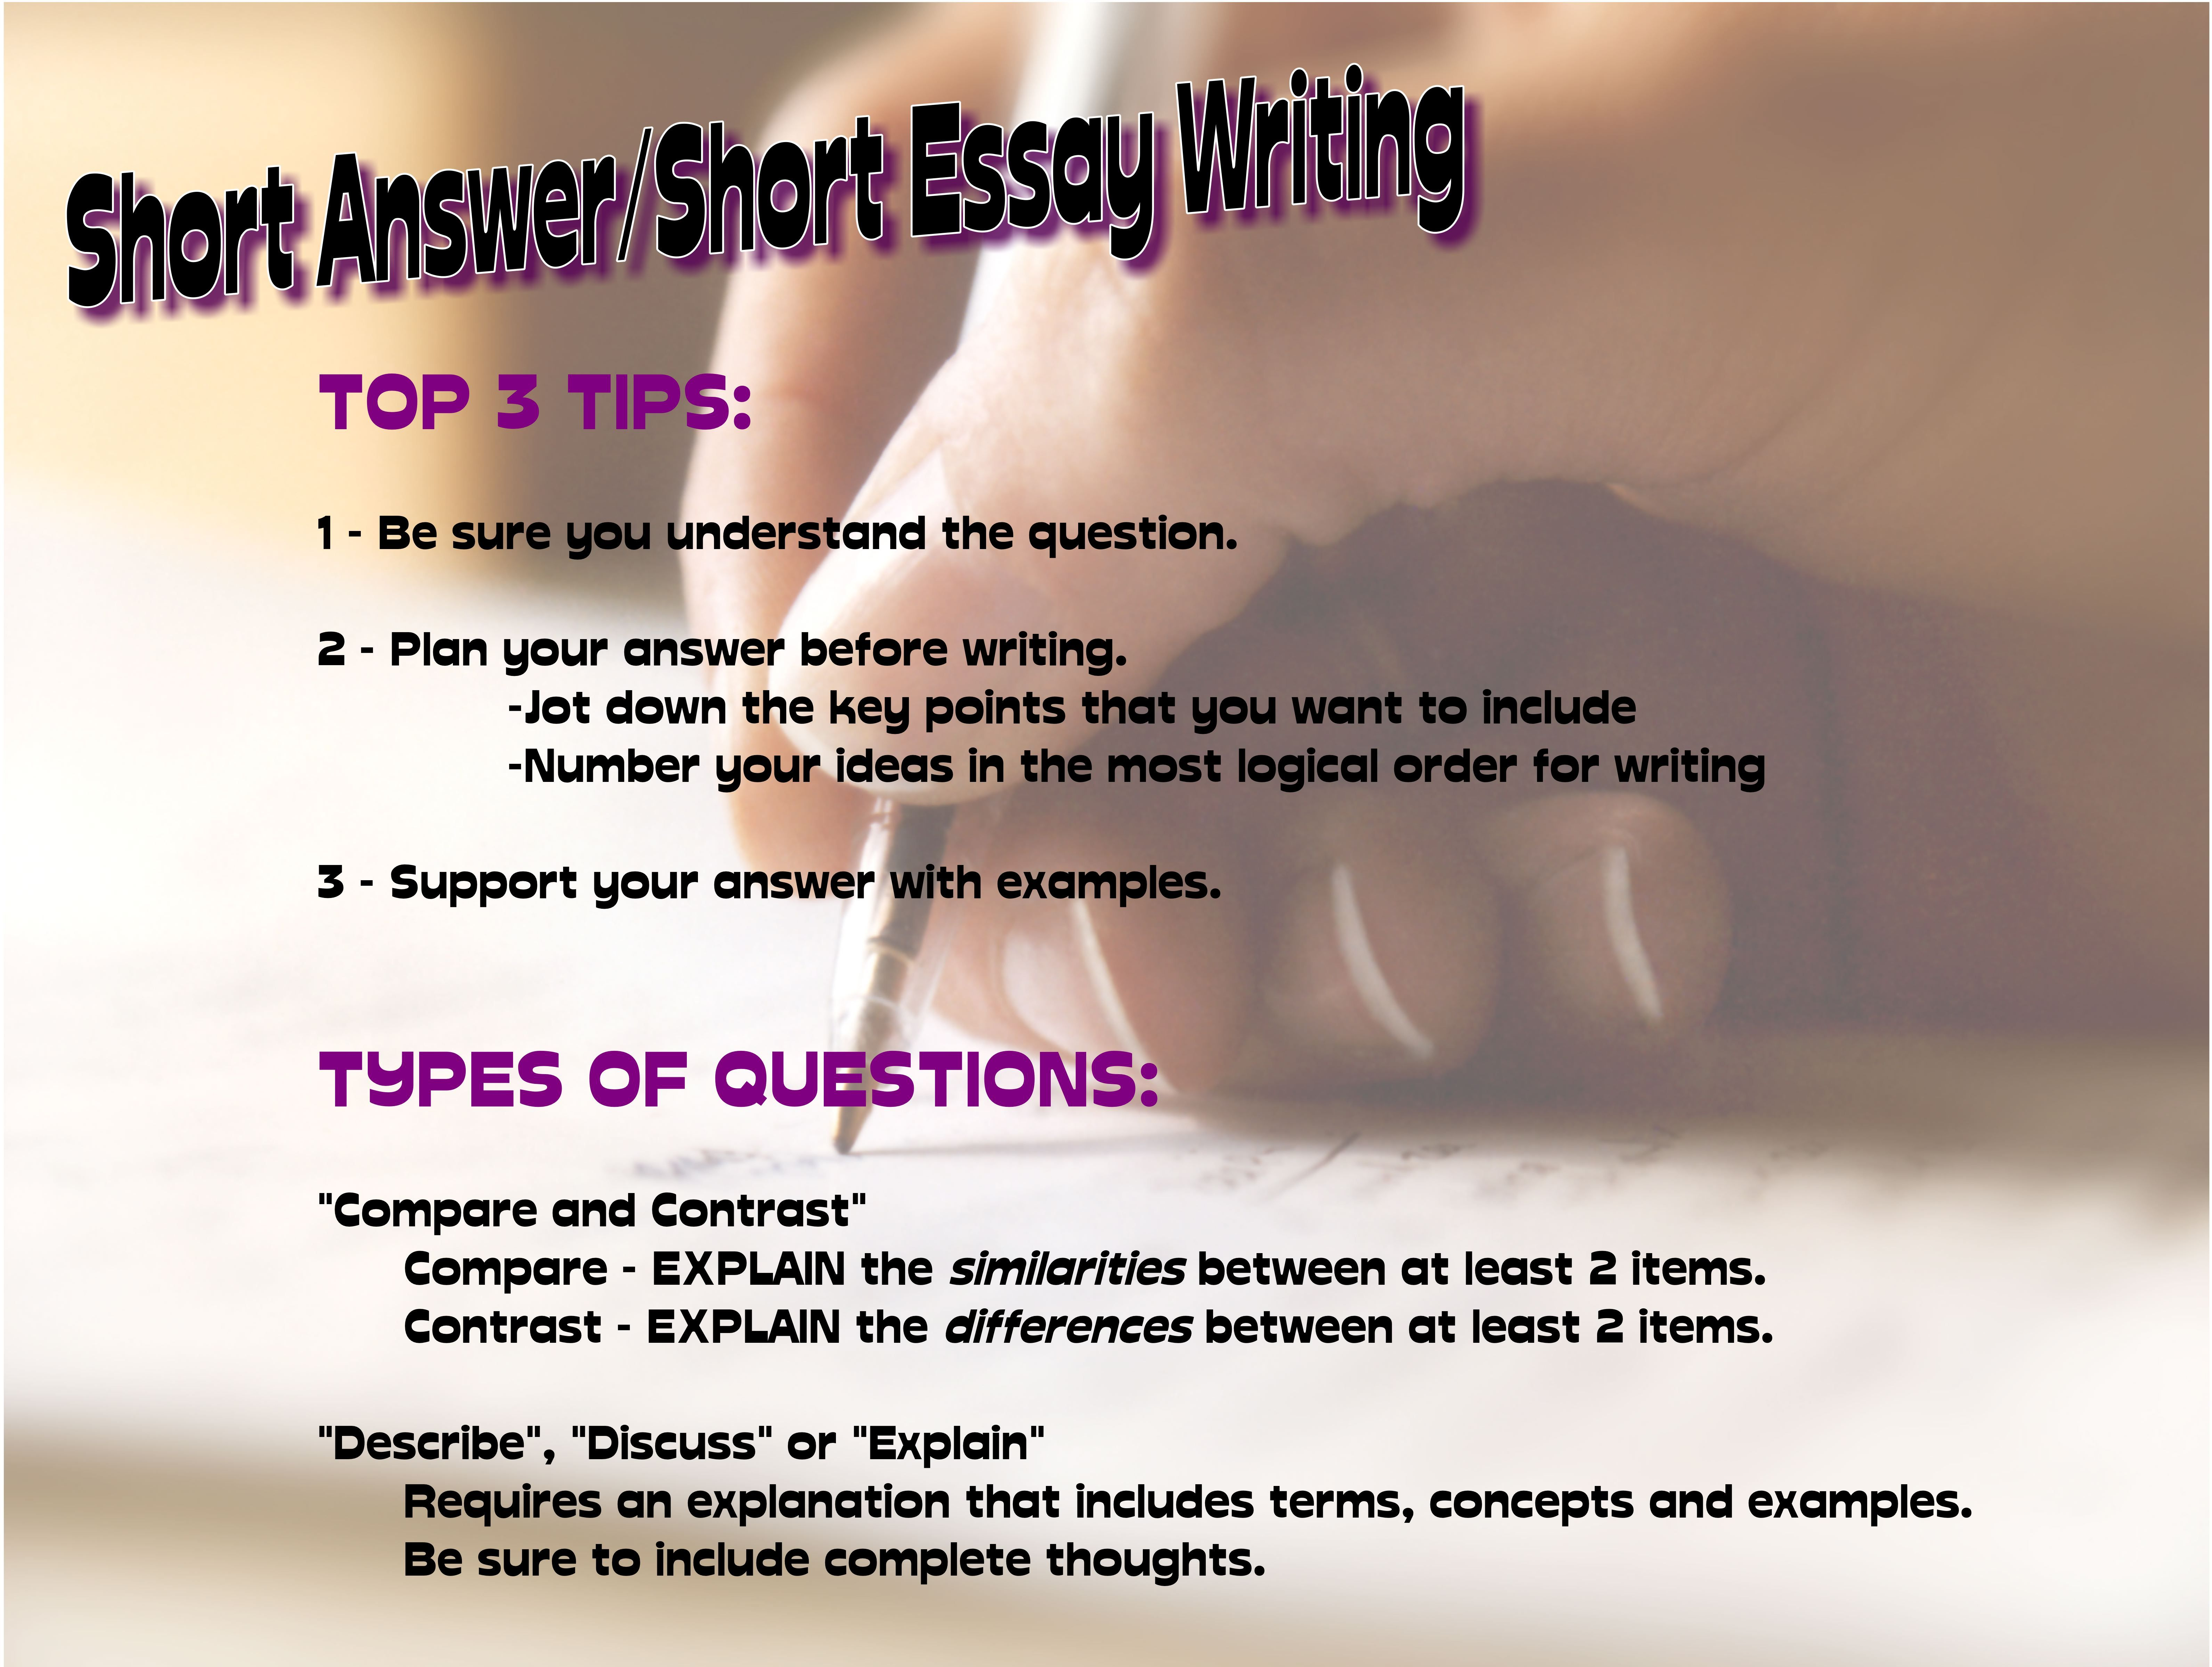 Short Answer/Short Essay Writing Tips | Essay Writing Help ...